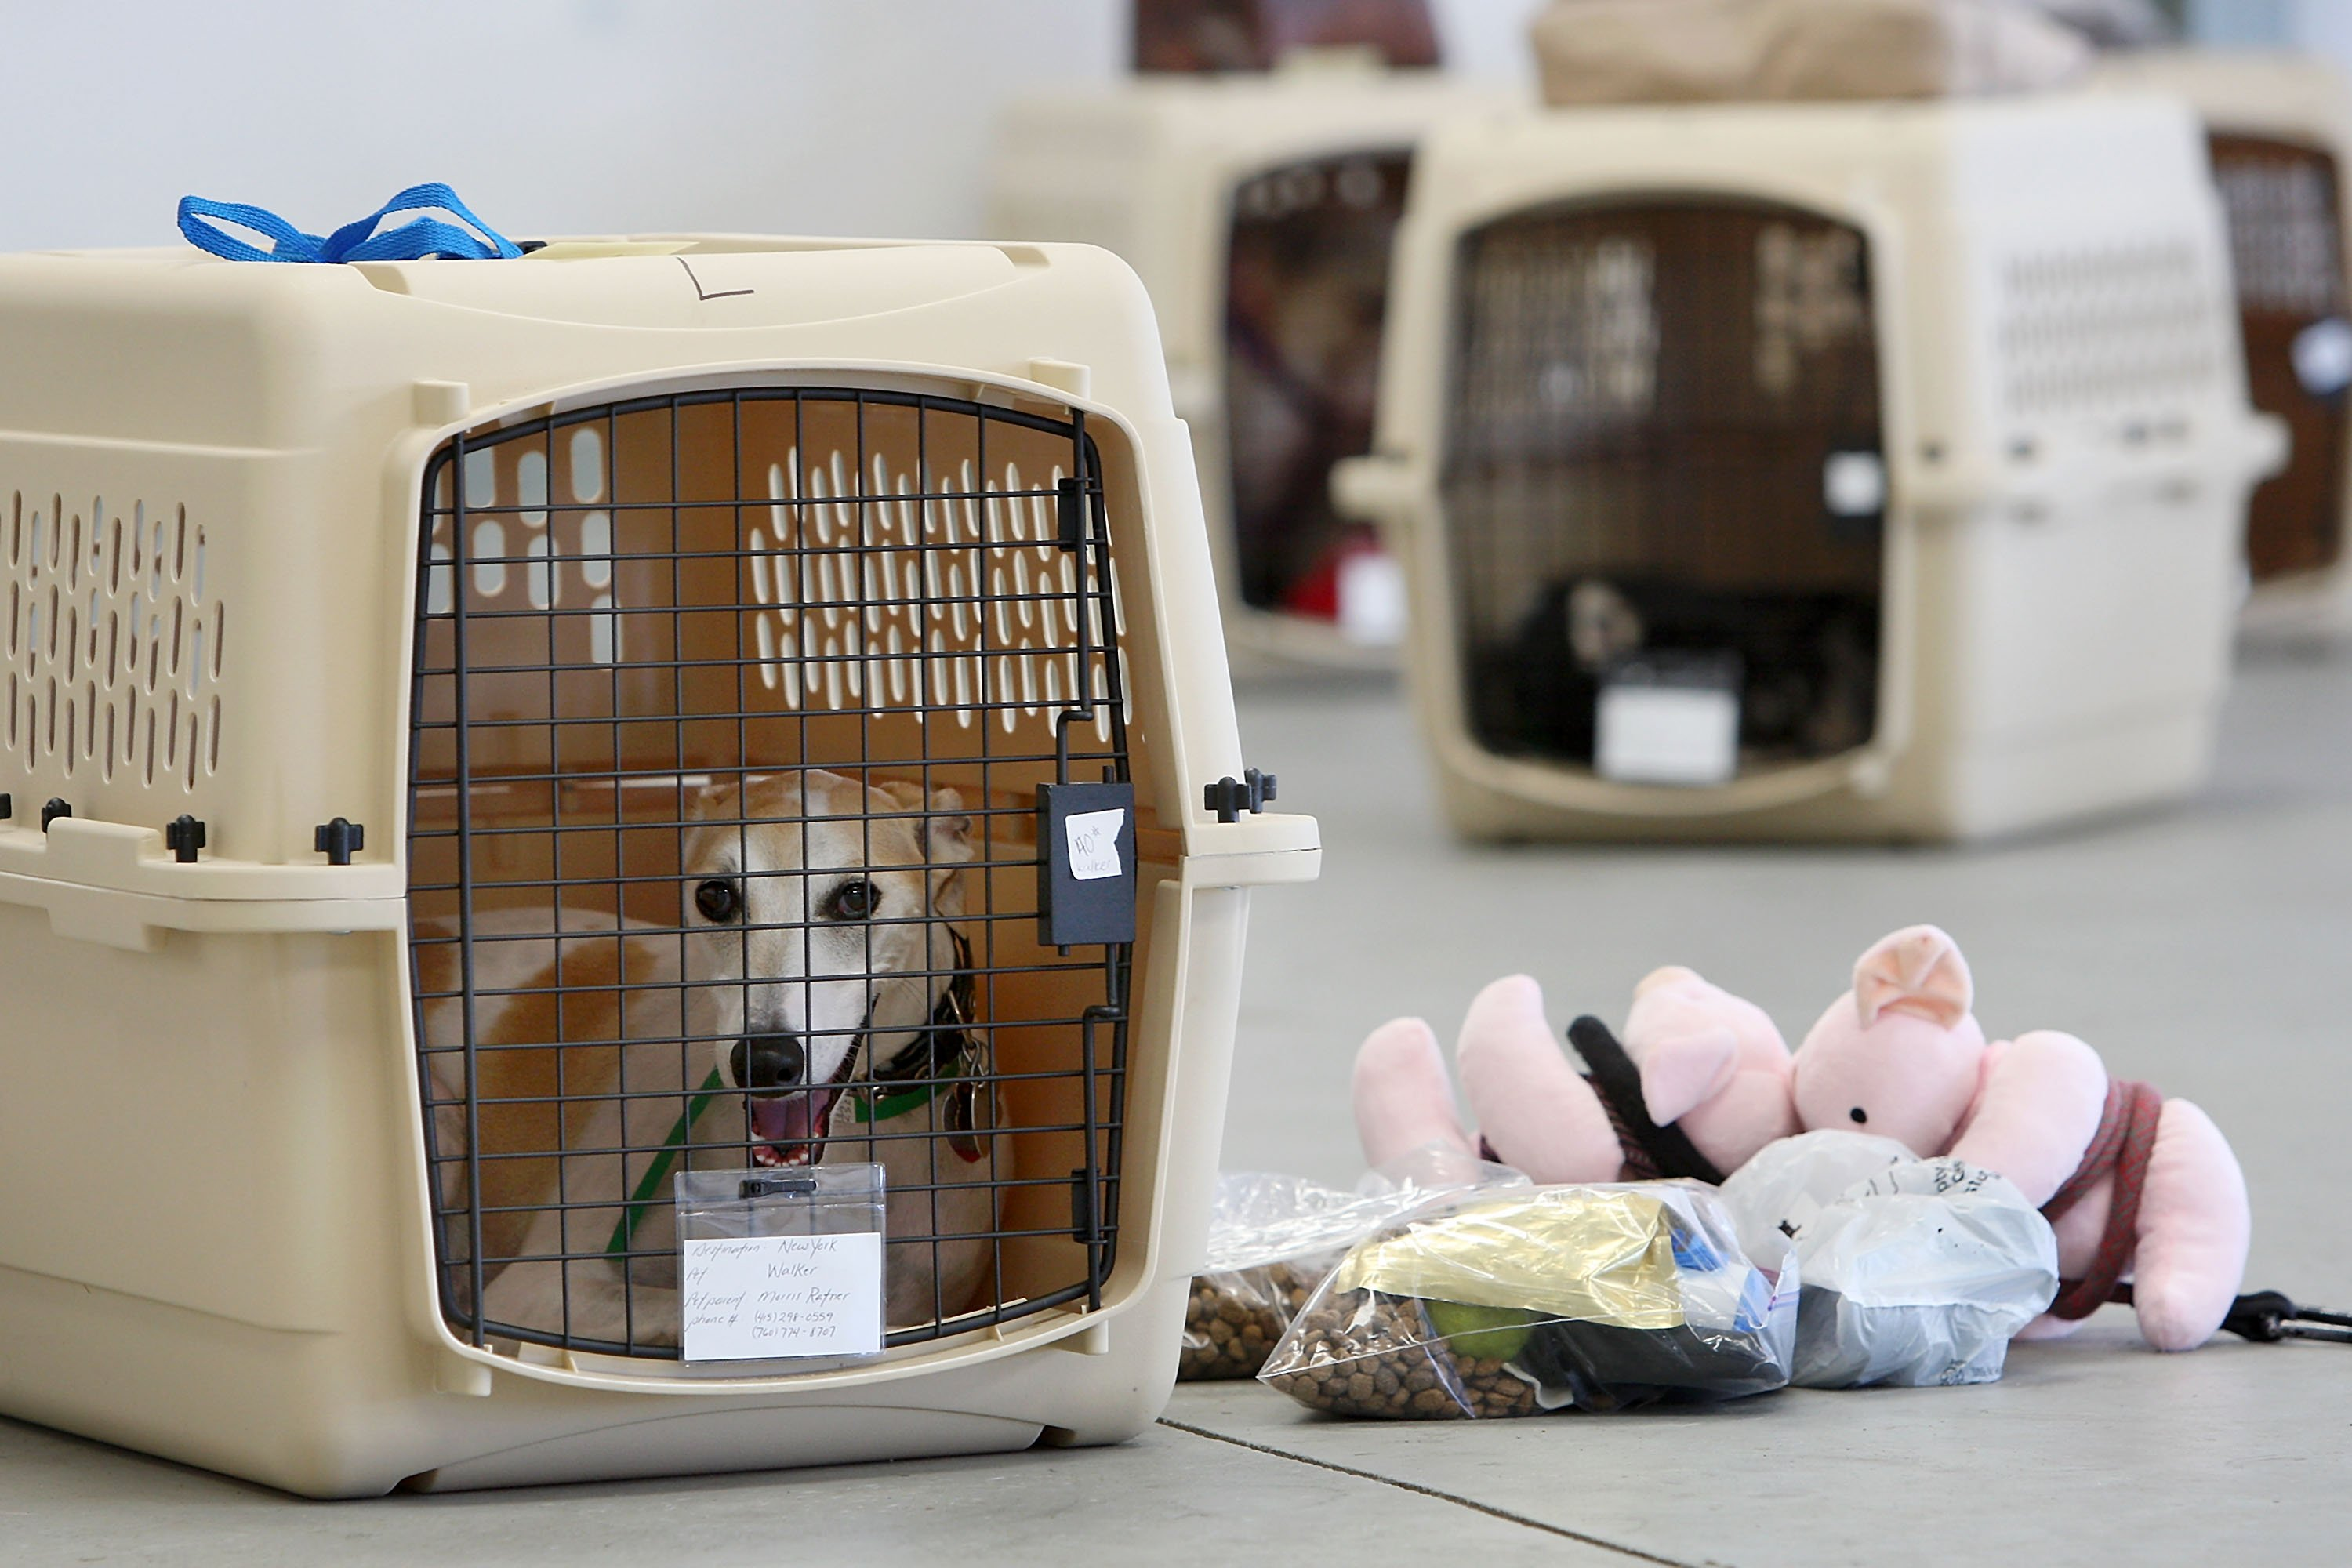 HAWTHORNE, CA - JULY 16: A dog sits in its crate near stuff toy pigs and pet food before the southern California maiden voyage of Pet Airways on July 16, 2009 in the Los Angeles-area city of Hawthorne, California. (Photo by David McNew/Getty Images)